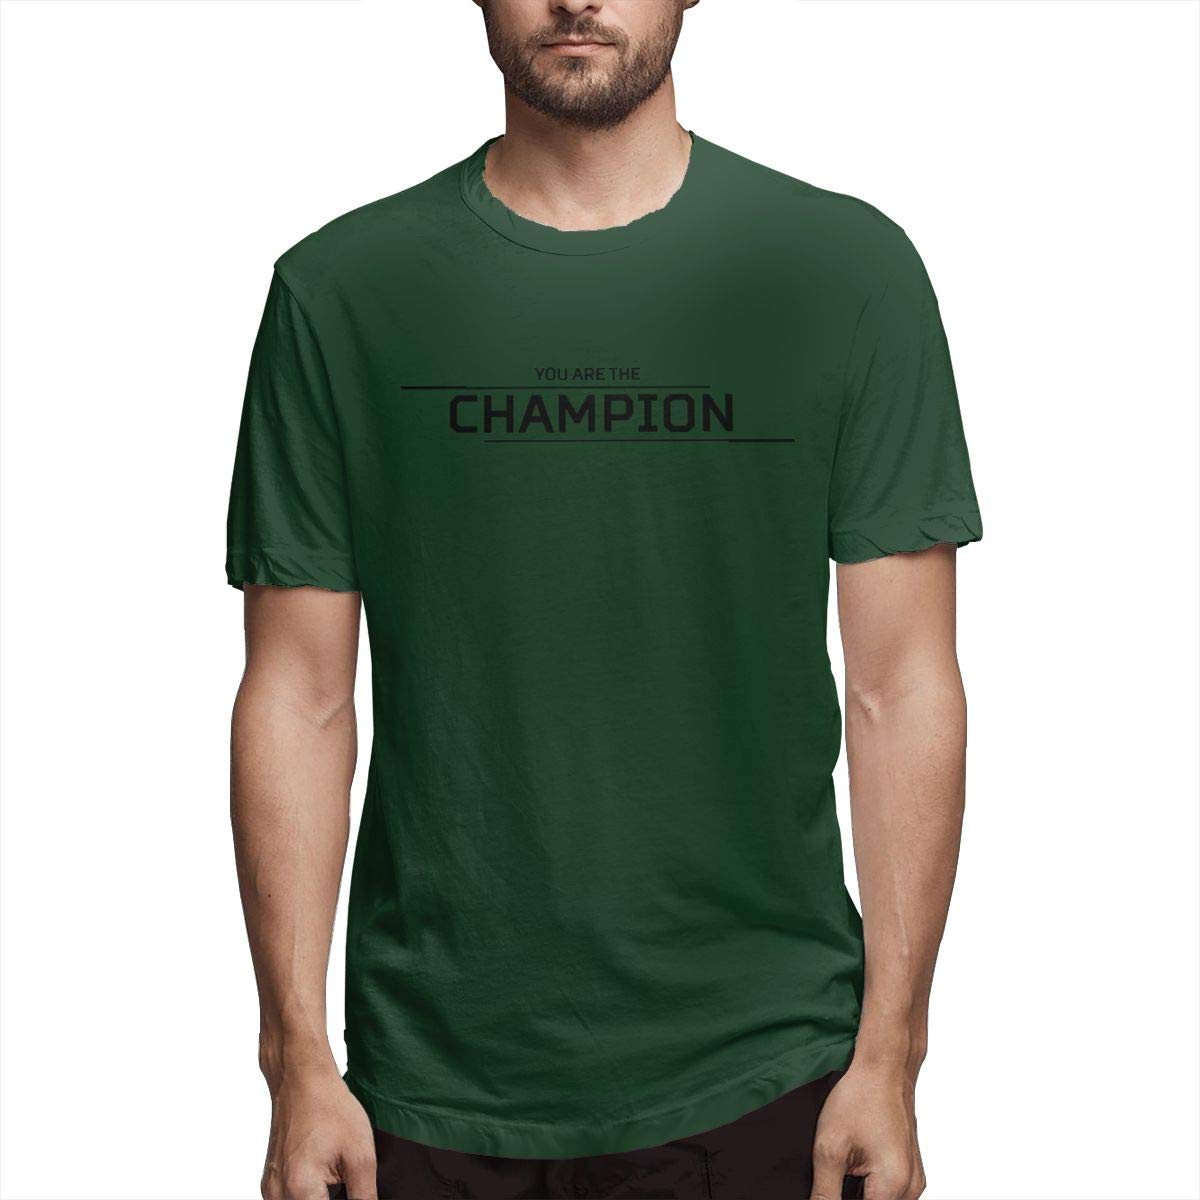 You are The Champion Mens Short Sleeve T-Shirt Short Sleeve Tshirts for Men White